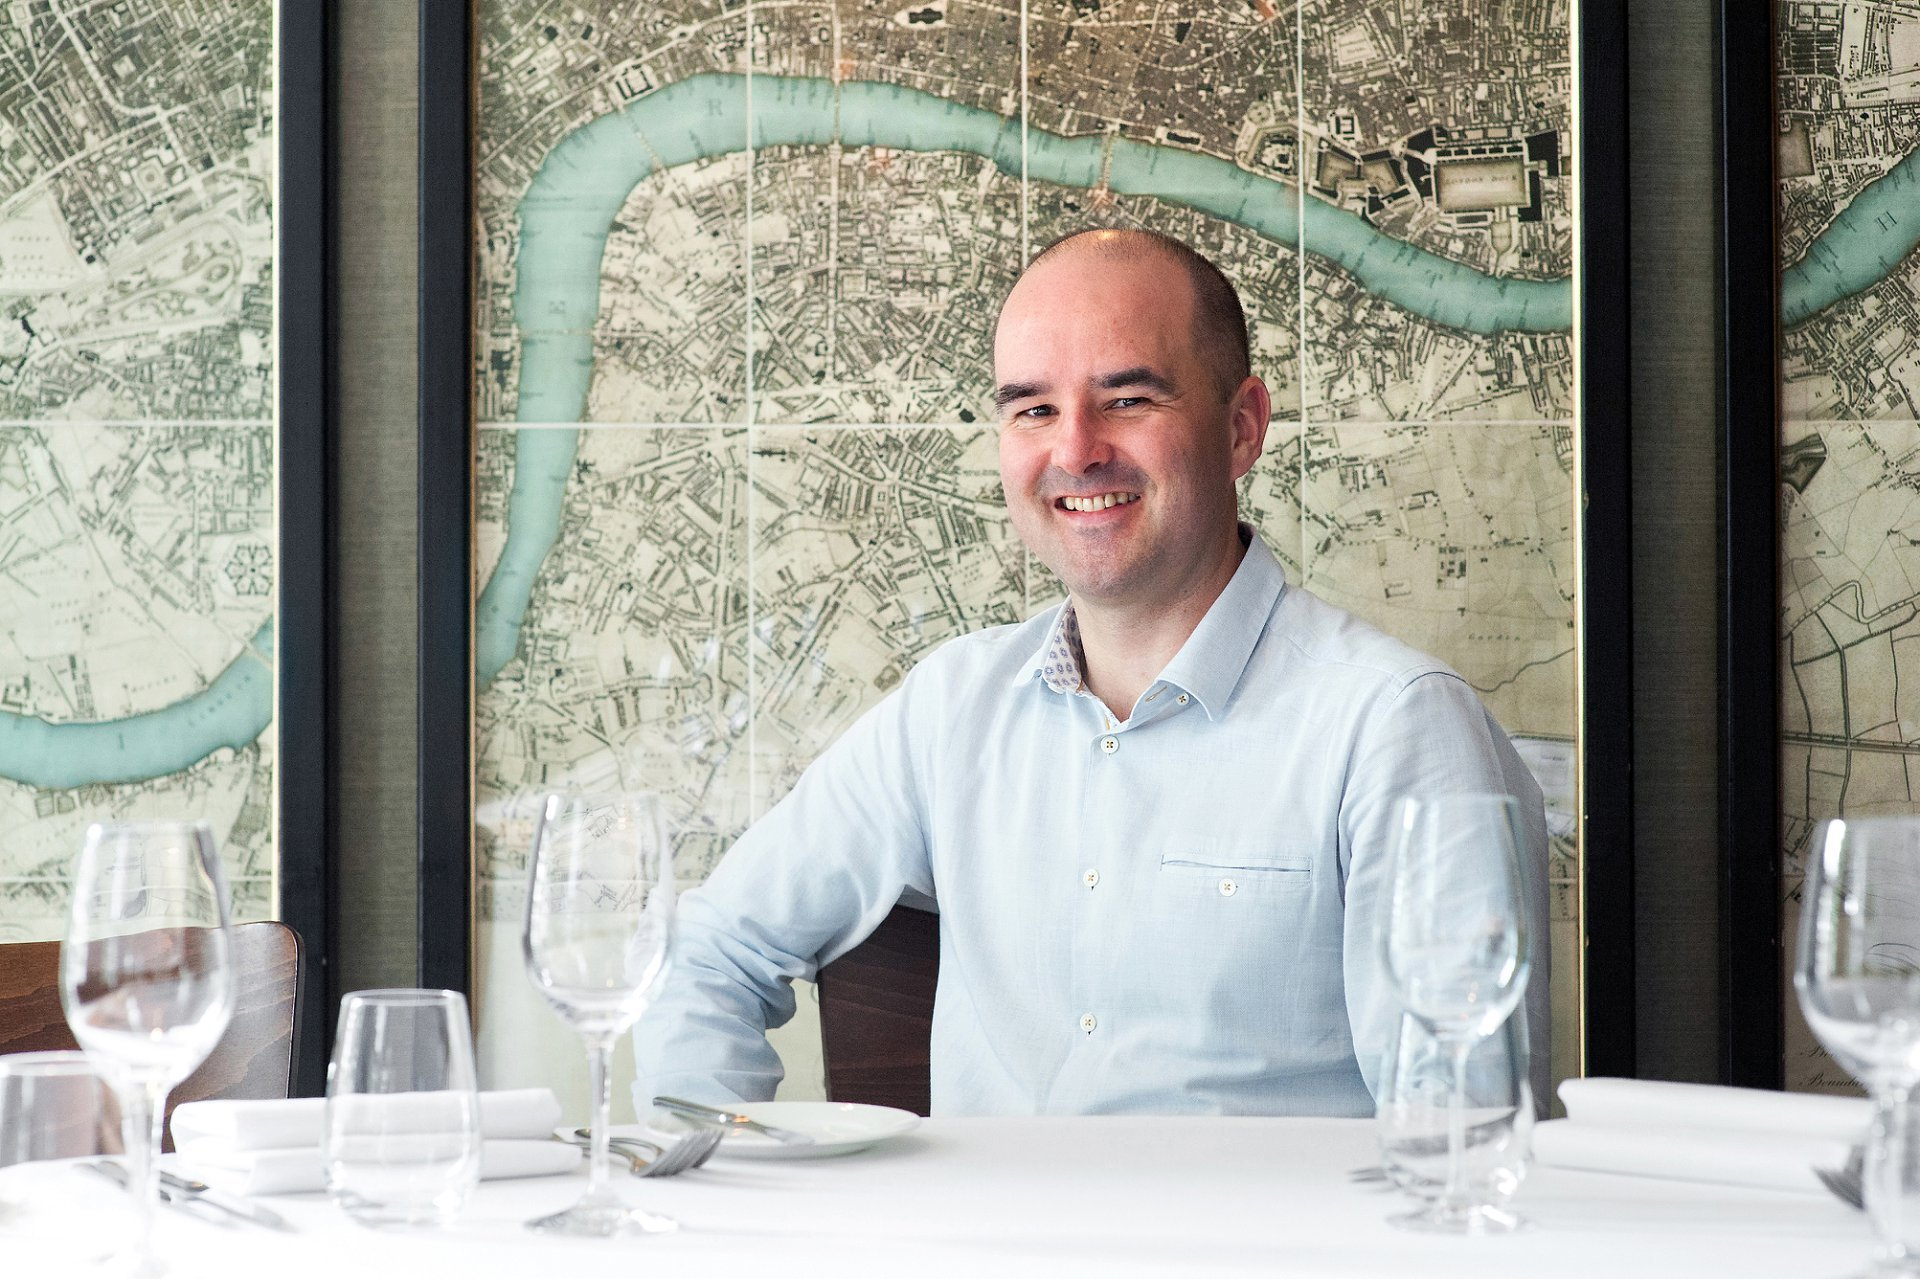 Chelsea Restaurant Medlar - David O'Connor, co-owner and front of house at Medlar in front of the impressive map triptych in the private dining room